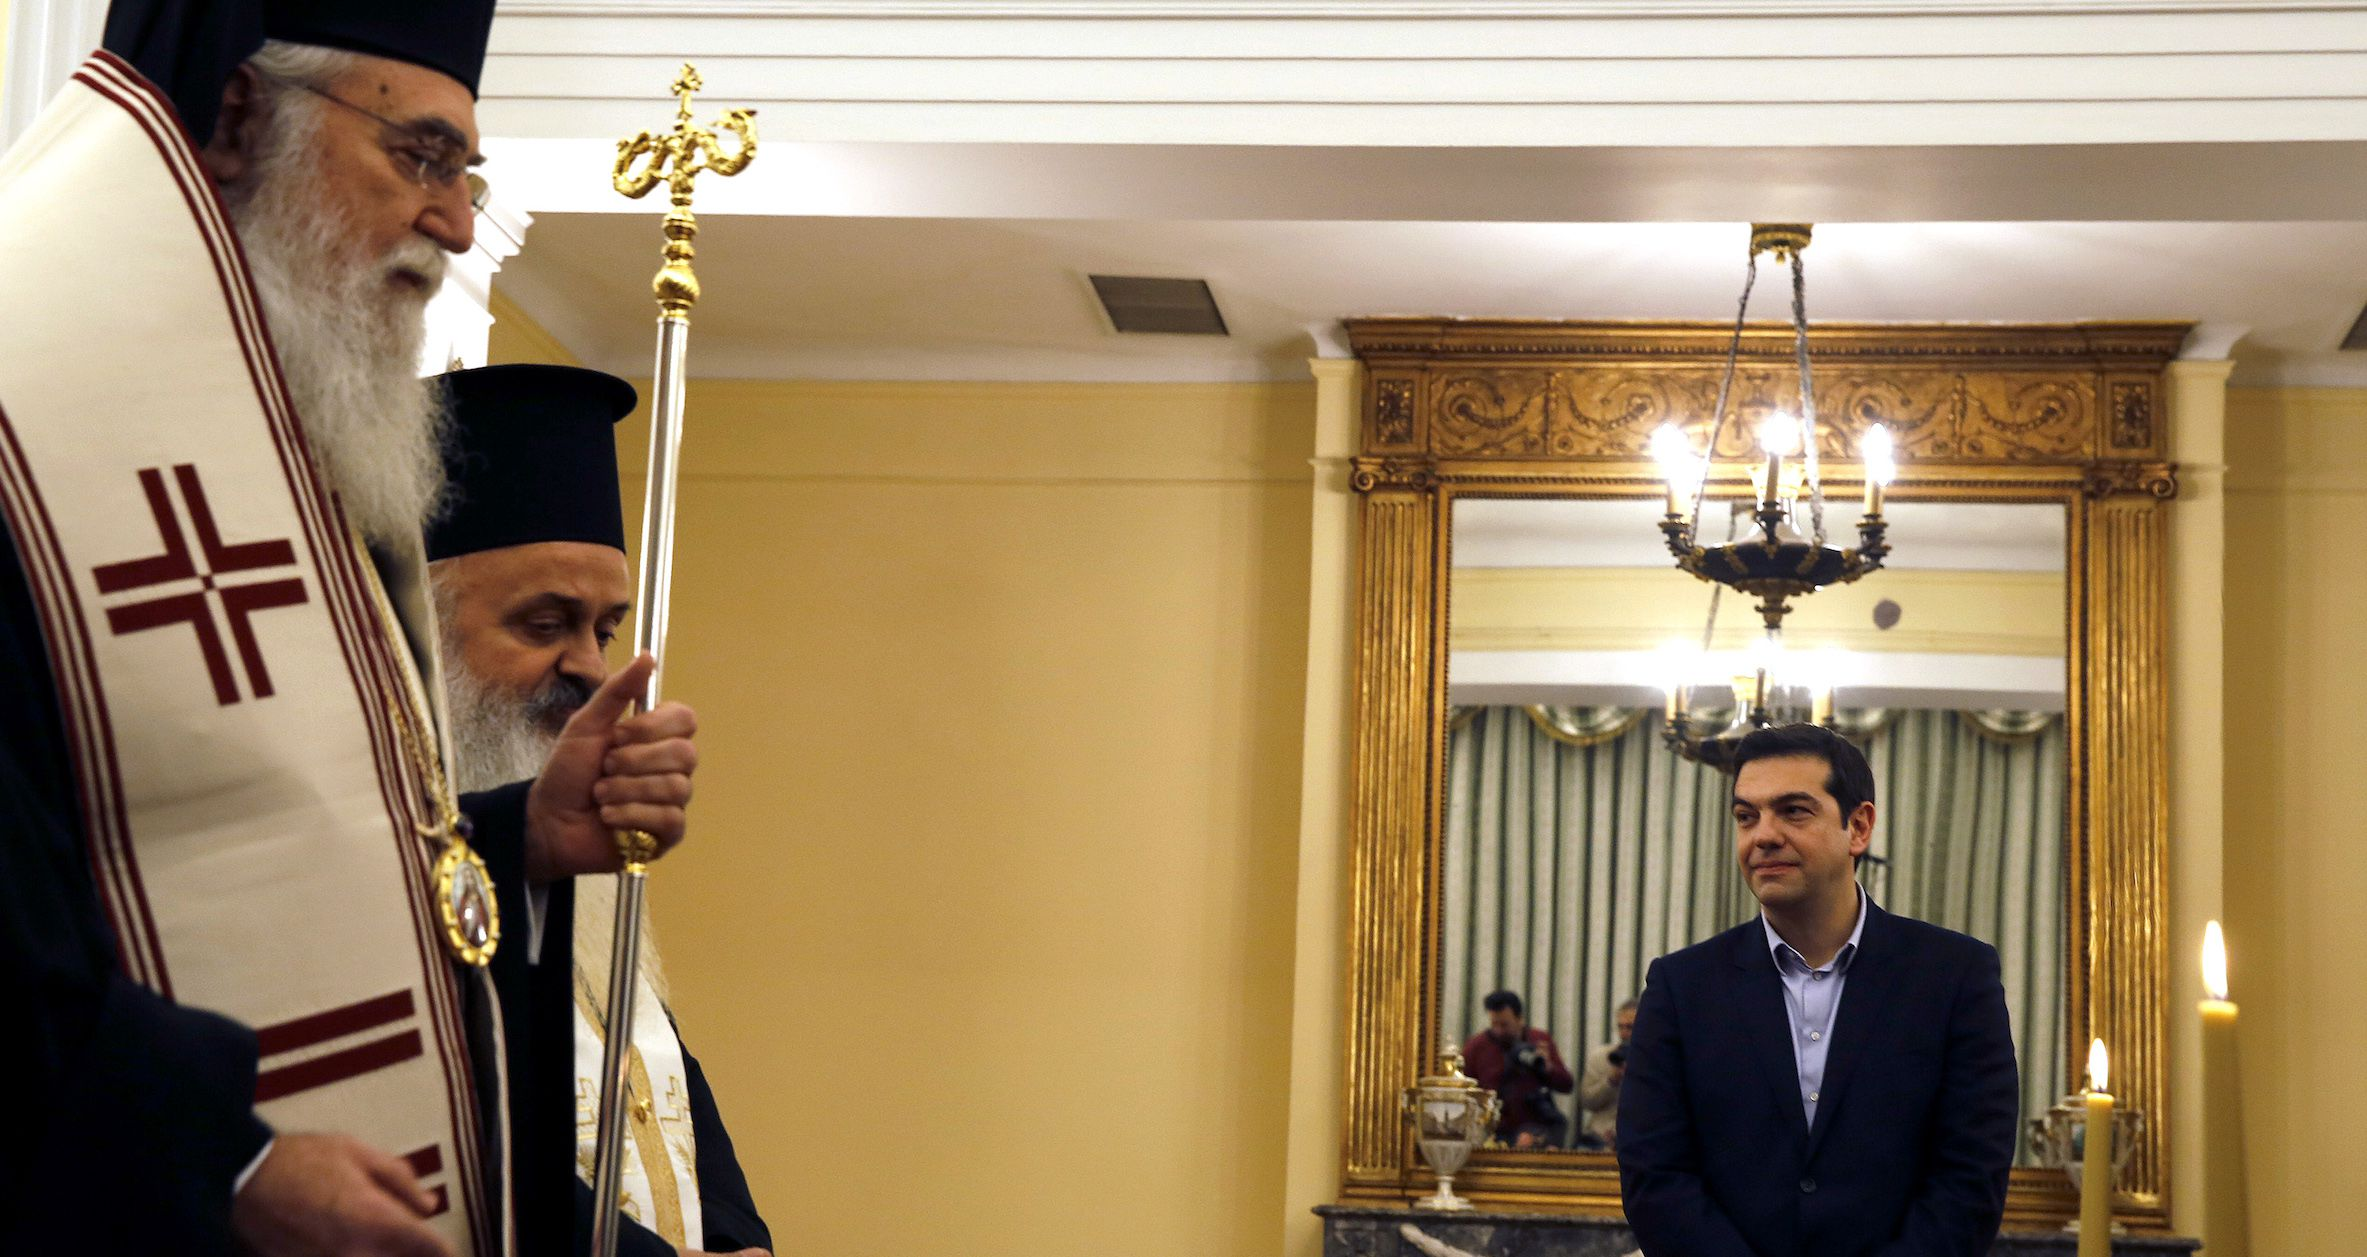 Greek orthodox priests conduct a swearing in ceremony for Greece's new government as newly appointed Greek Prime Minister and winner of the Greek parliamentary elections Alexis Tsipras looks on at the presidential palace in Athens January 27, 2015.  REUTERS/Yannis Behrakis (GREECE - Tags: POLITICS ELECTIONS) - RTR4N71S